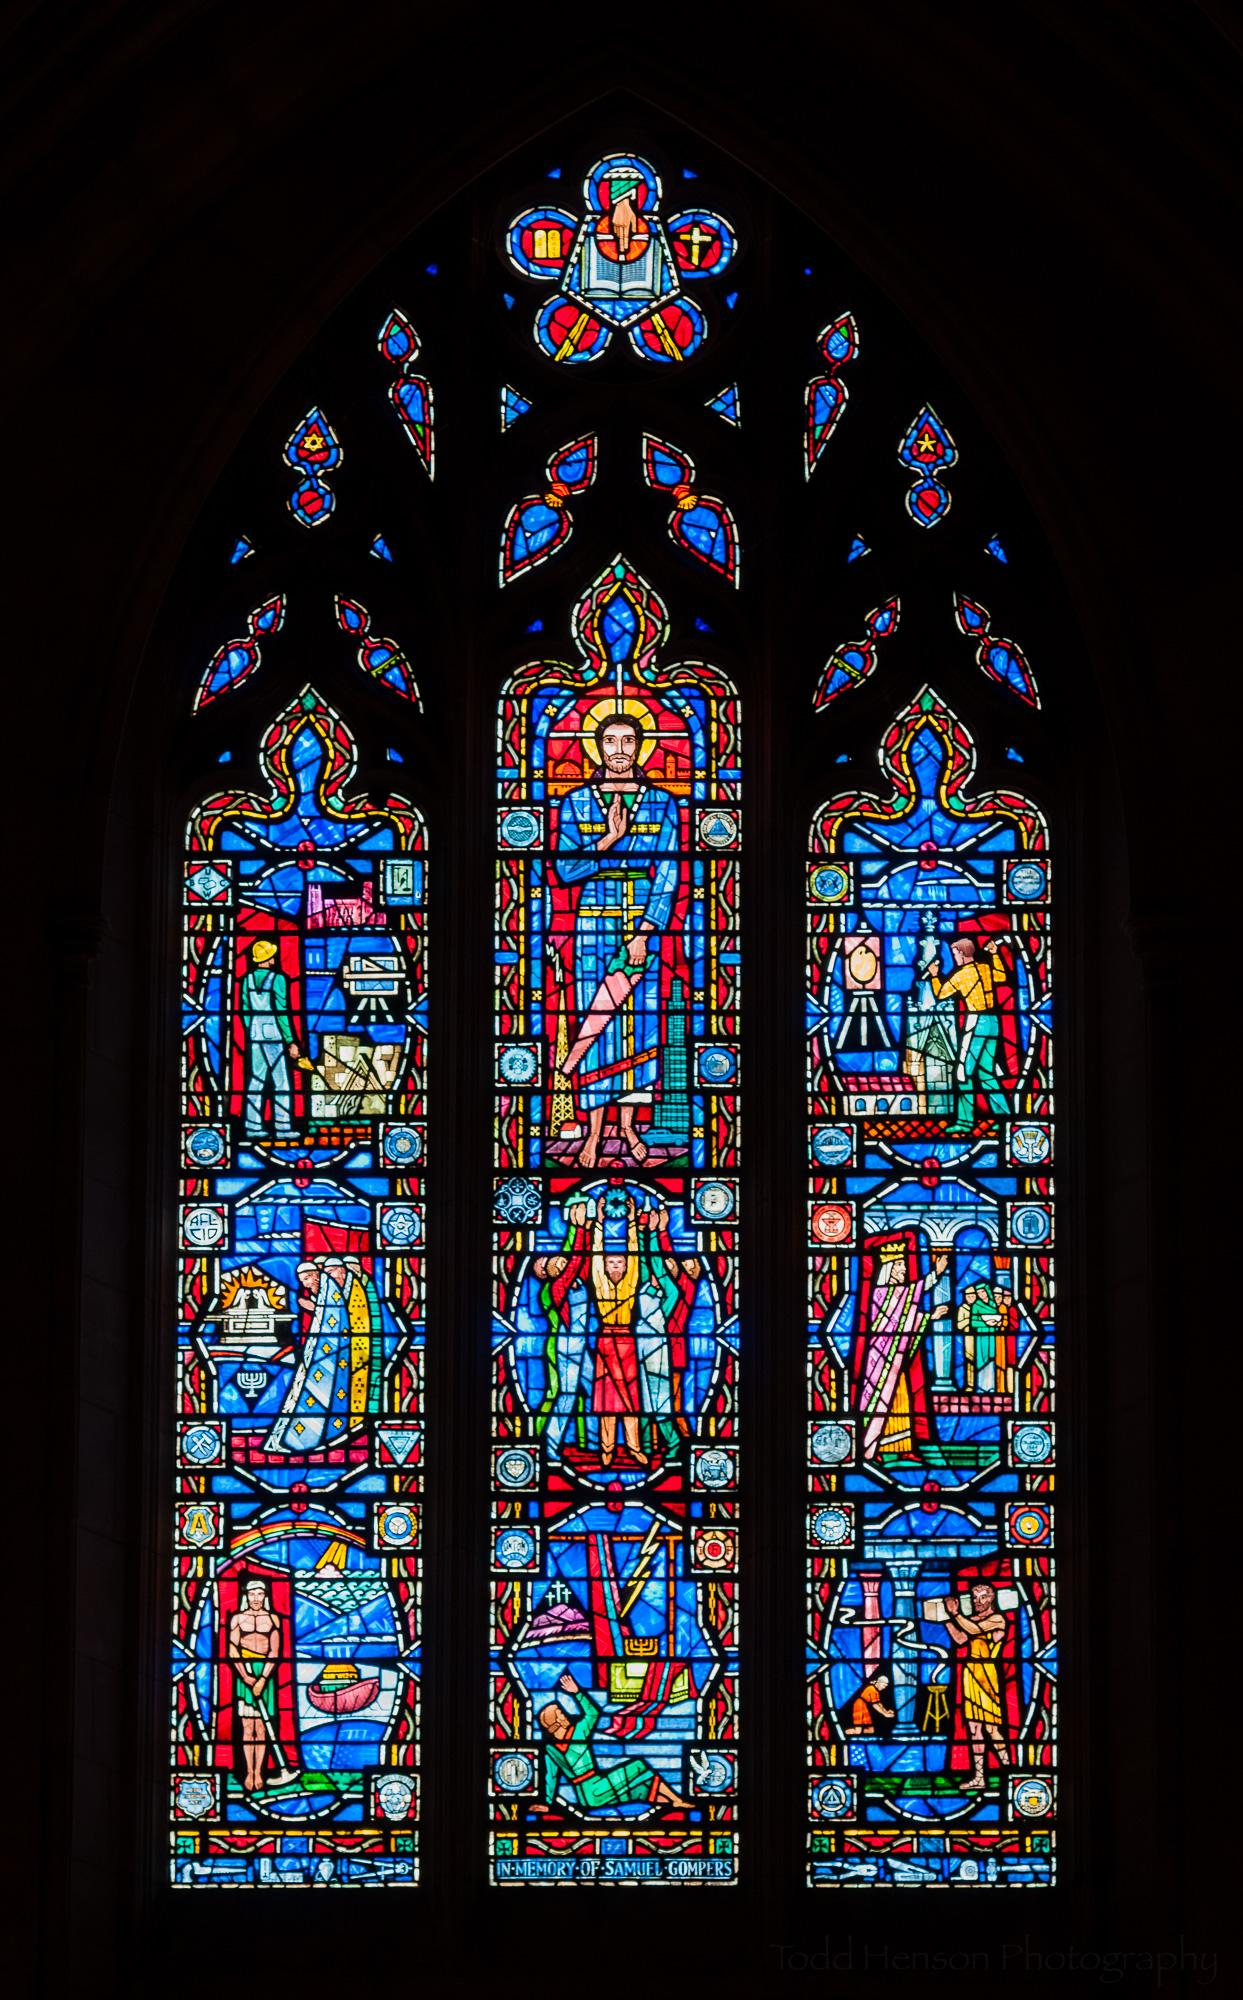 Labor Window, a stained glass window at Washington National Cathedral